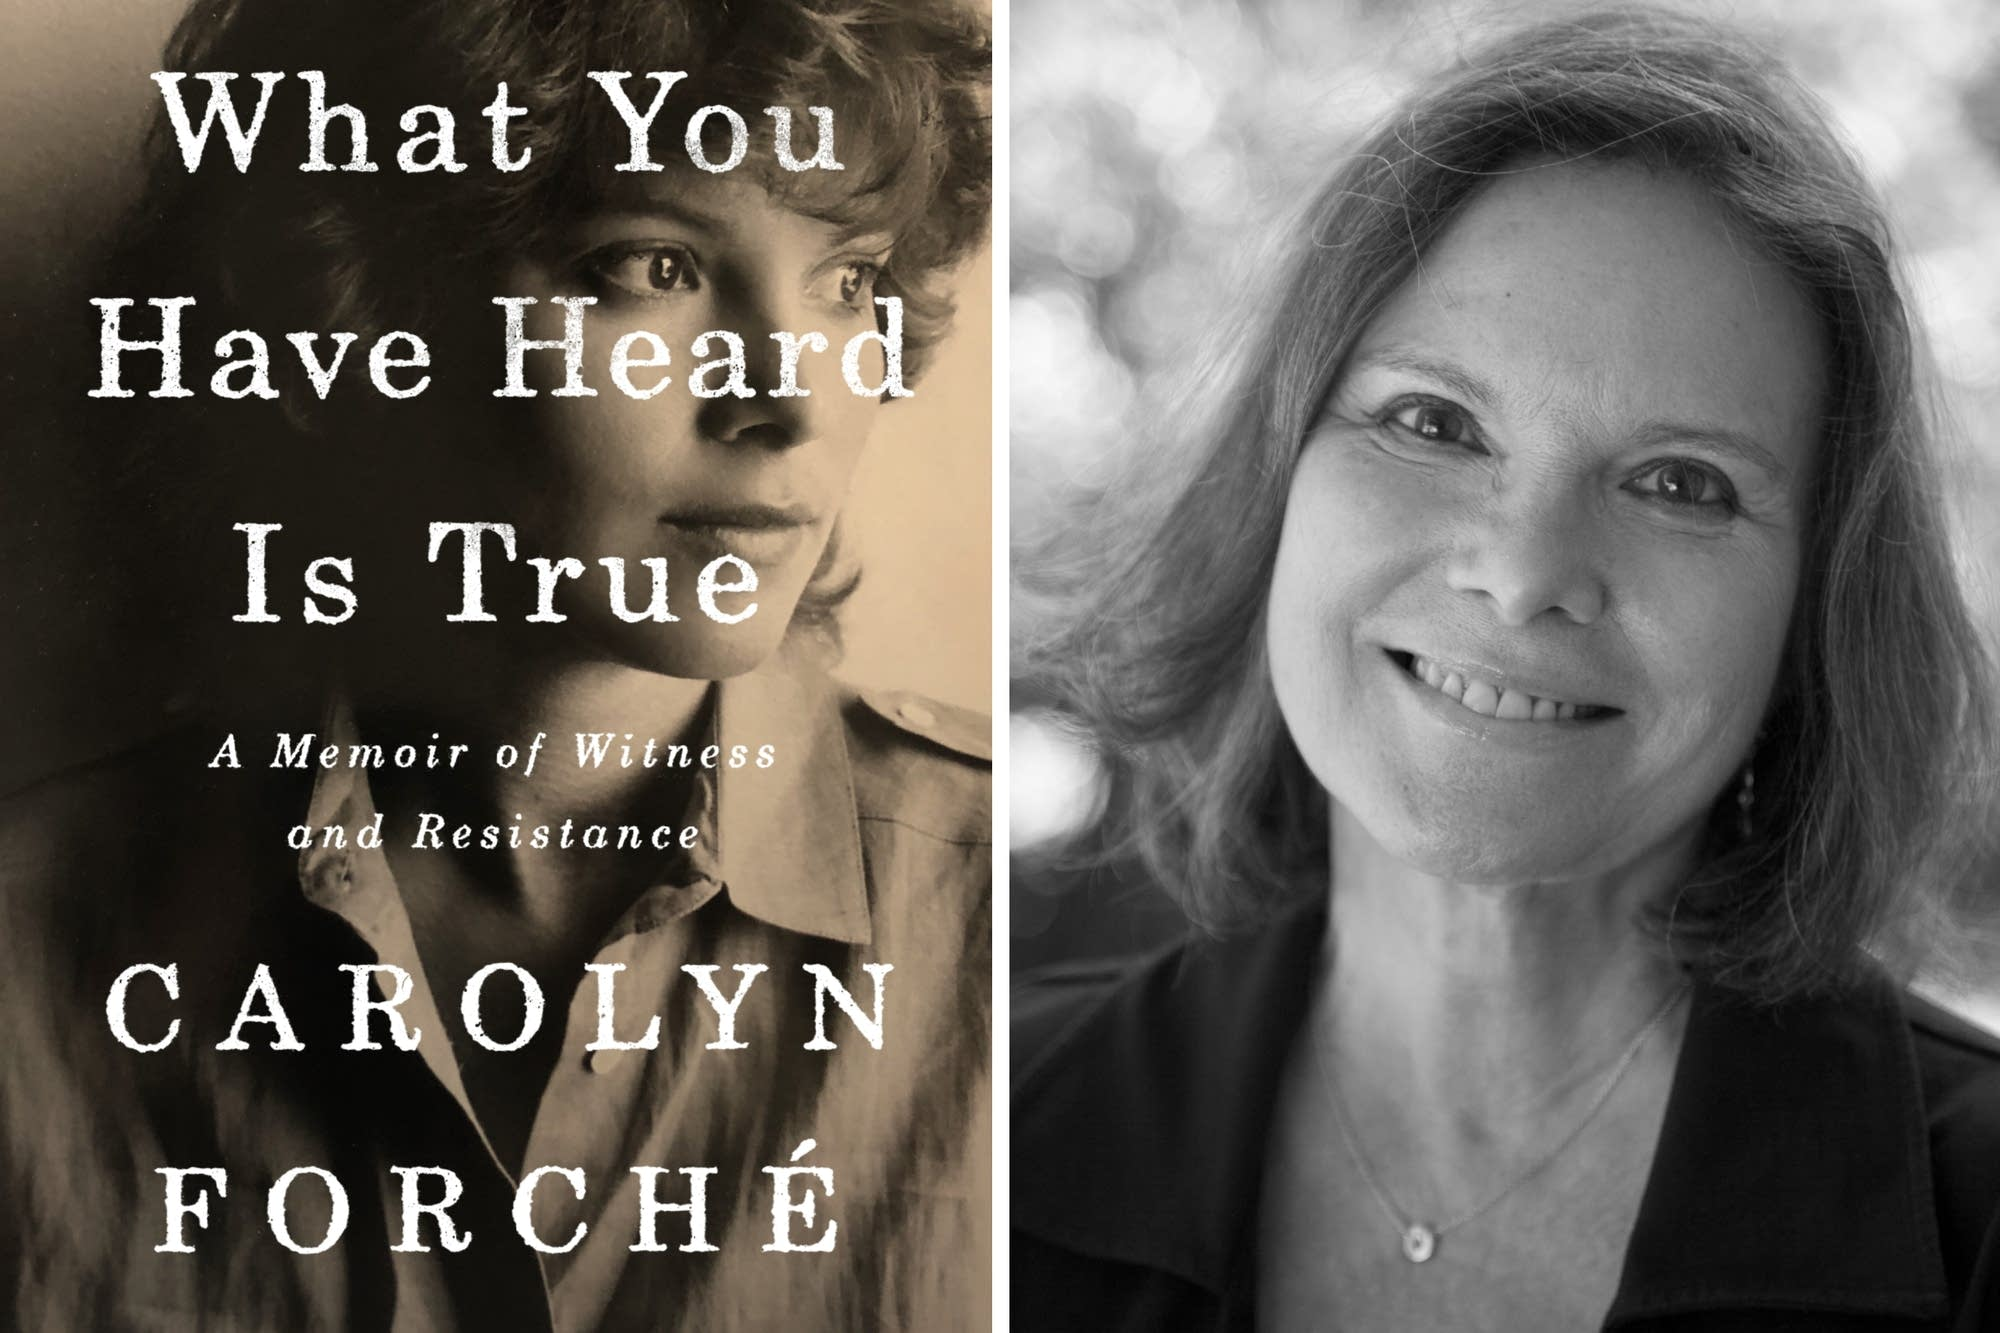 Carolyn Forché author of 'What You Have Heard Is True'